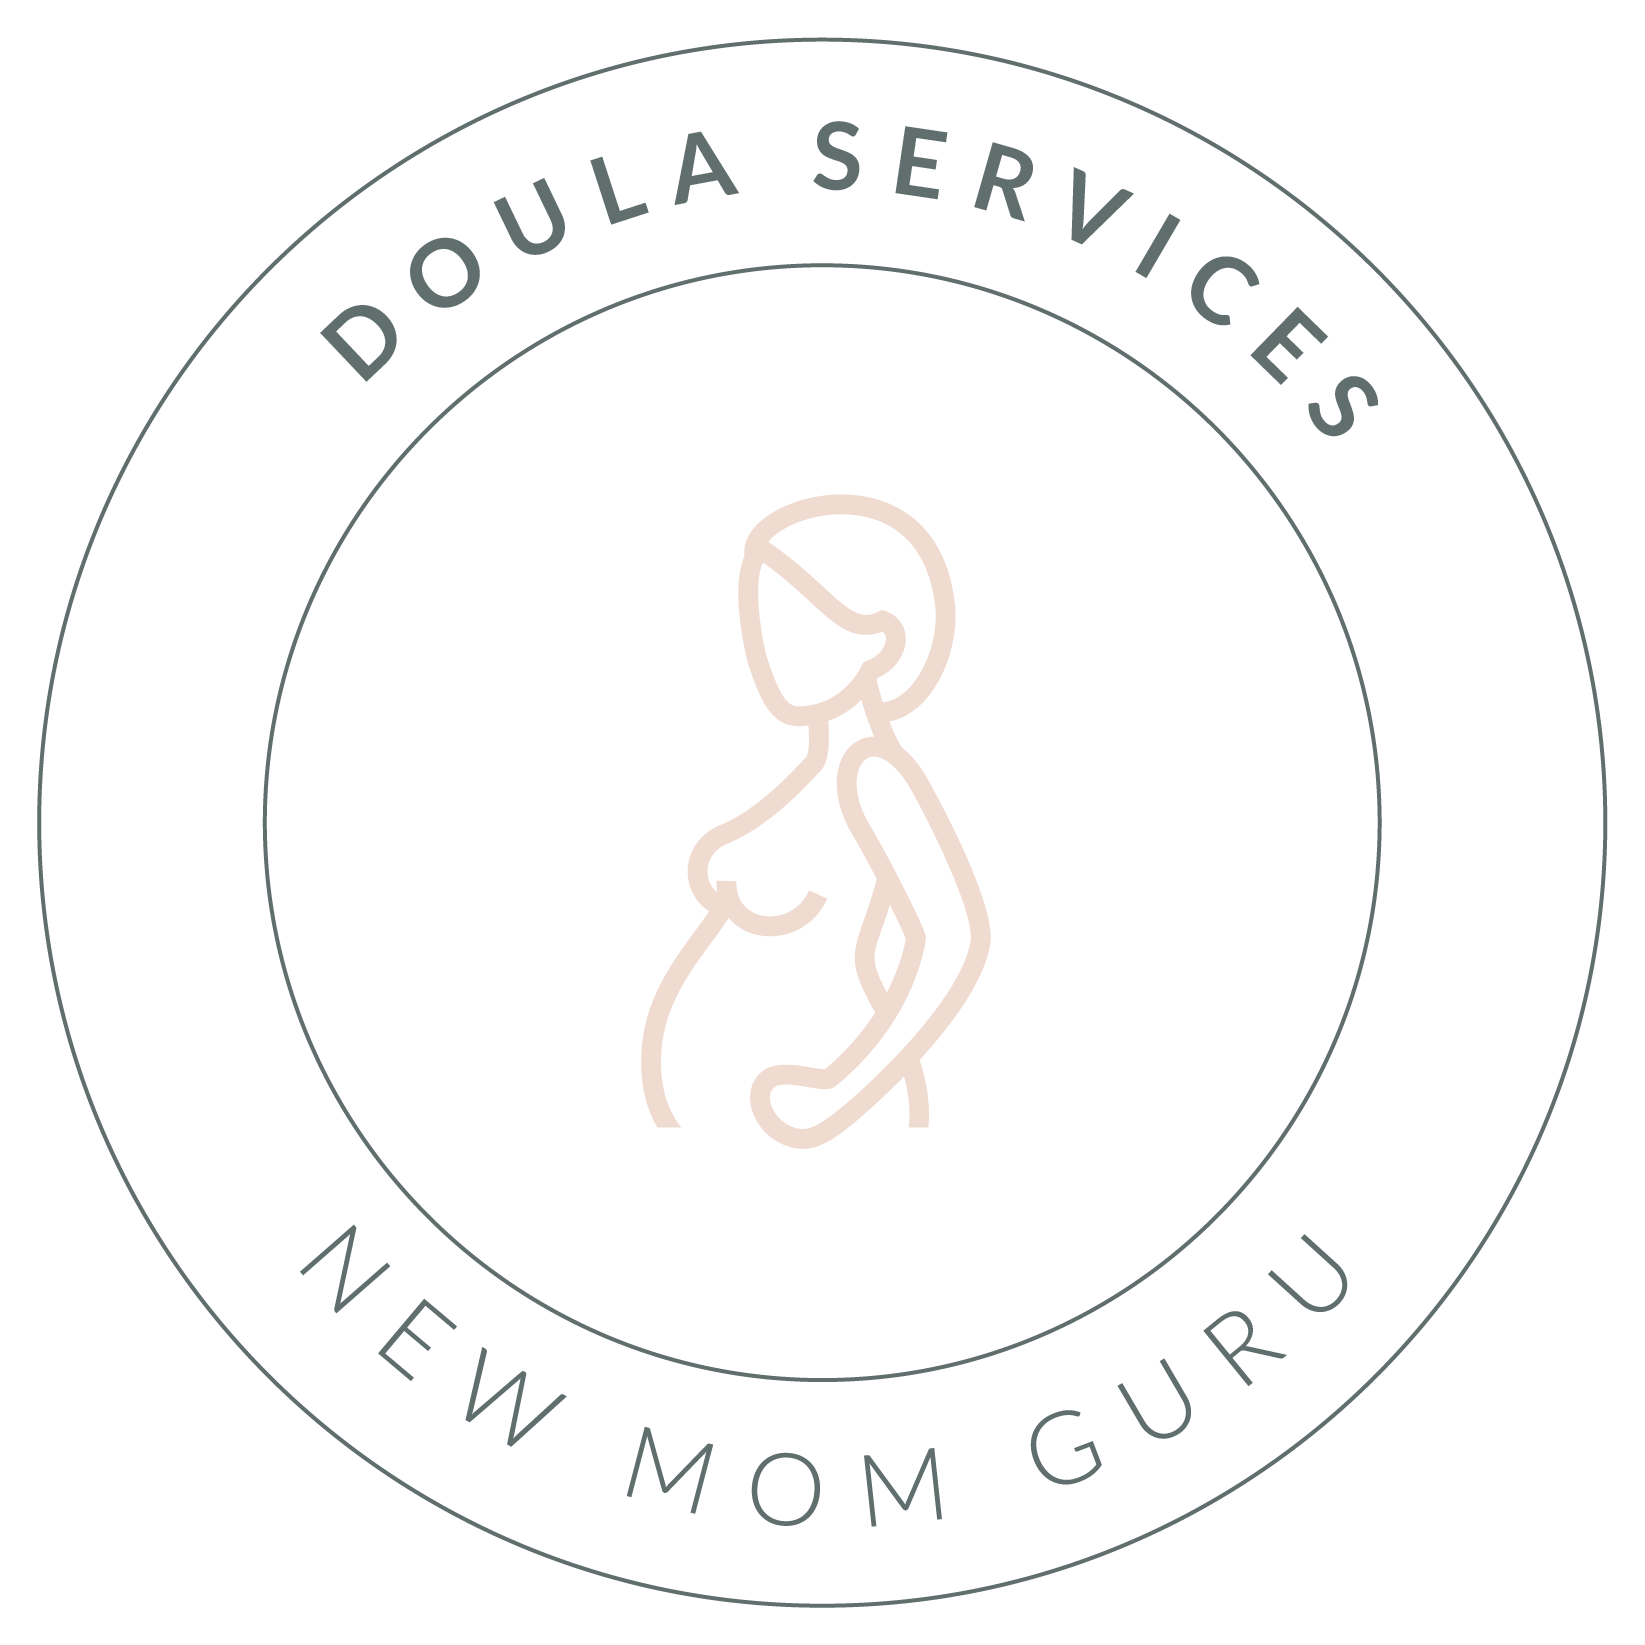 Doula Services for Moms